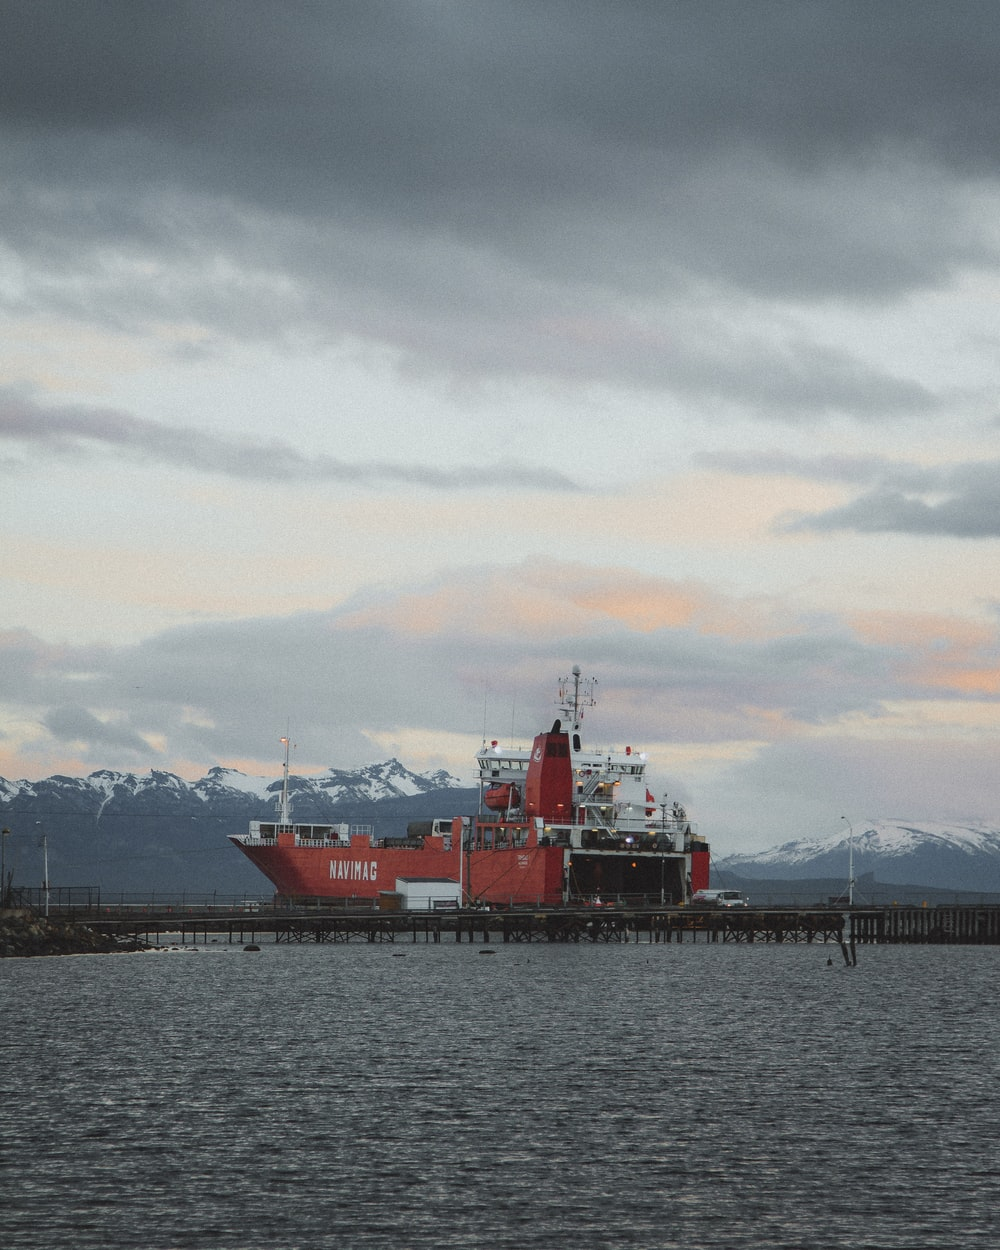 red ship on sea under cloudy sky during daytime